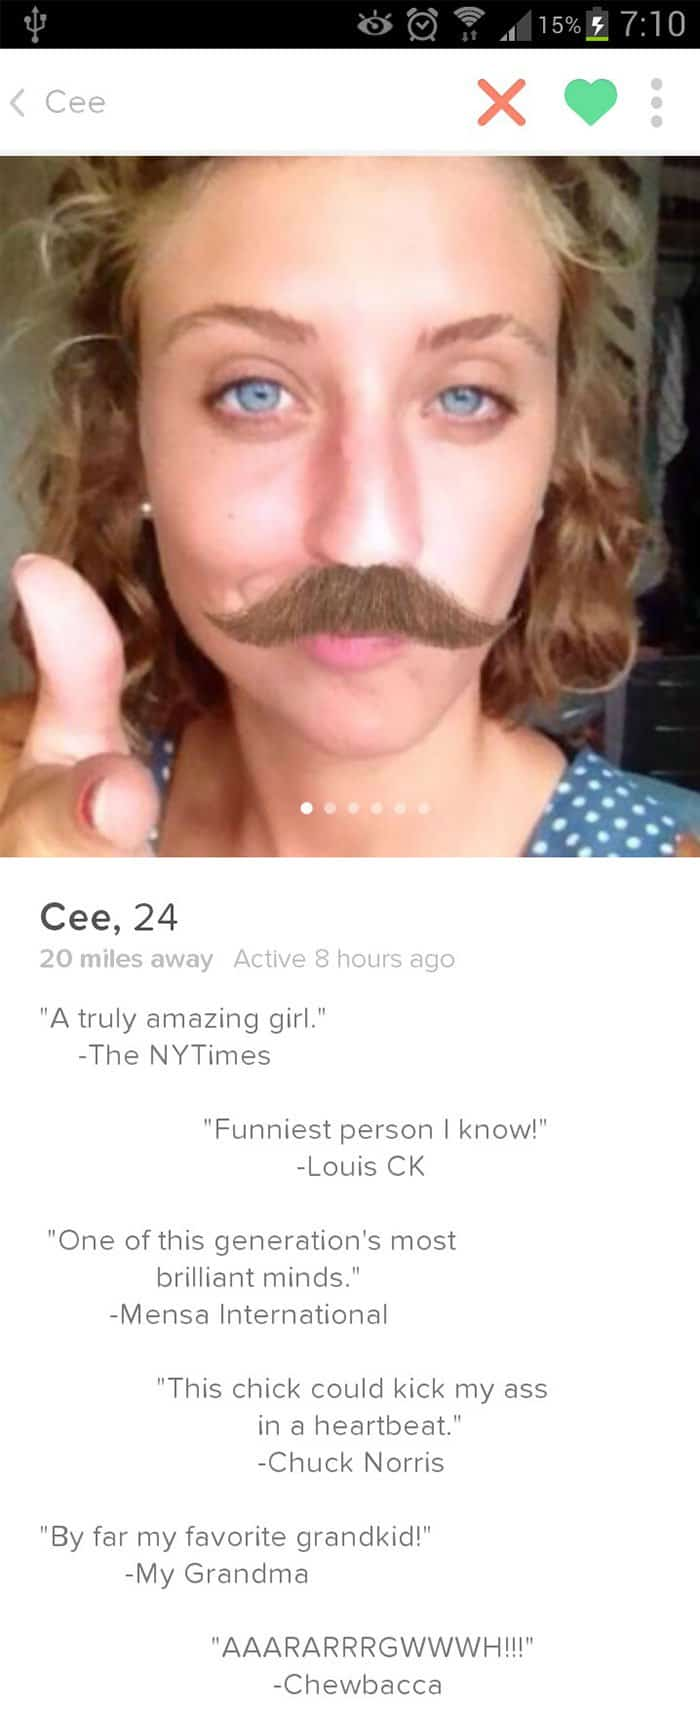 Funny Tinder Profiles That Will Make You Look Twice